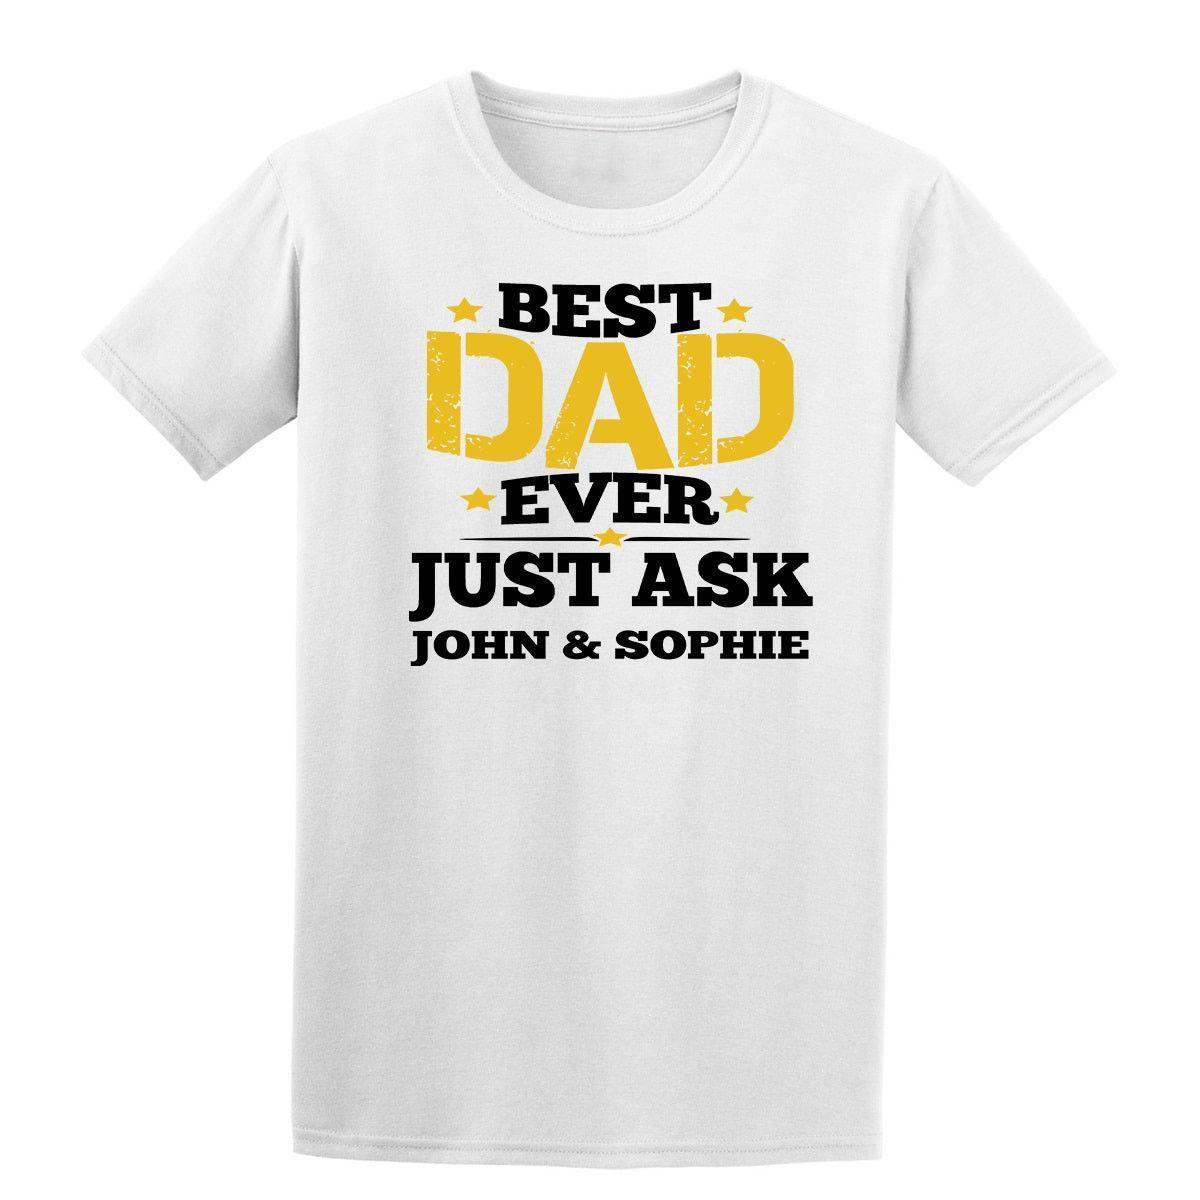 7fc4119ca Customise Best Dad Ever Mens T Shirts Father'S Day 2018 Gift Personalized  Black Designer White Tee Shirts Cool T Shirts Buy Online From Linnan00005,  ...